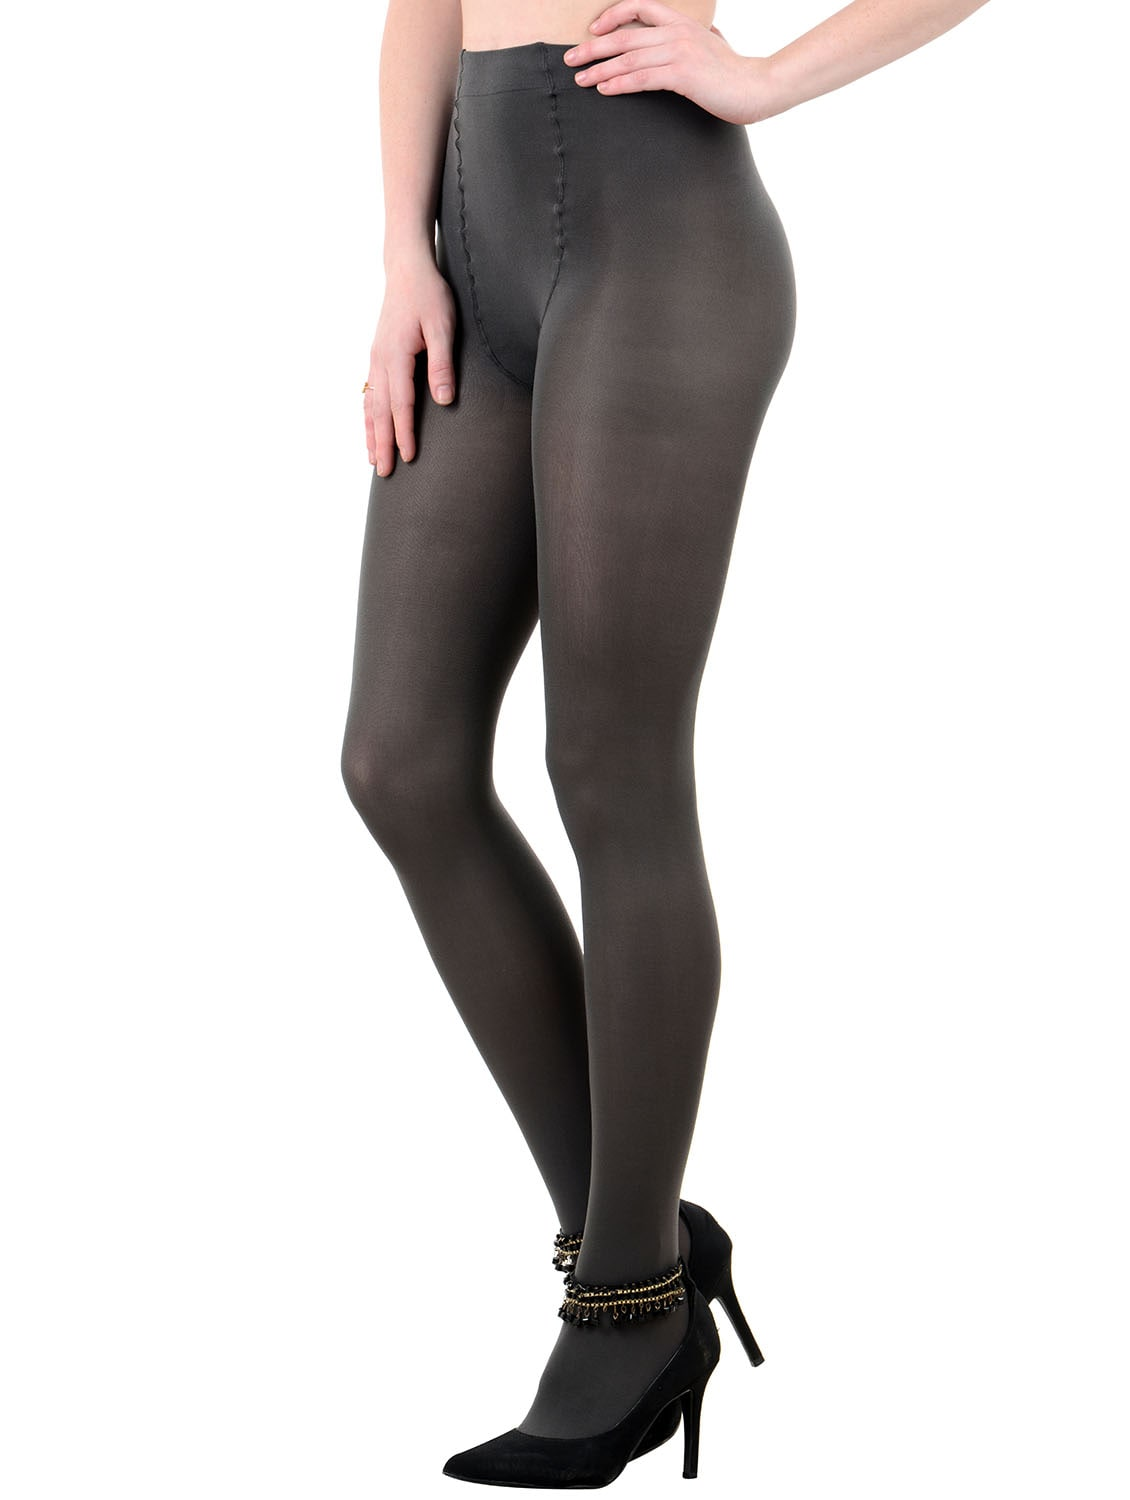 33a883cec97 Buy Grey Nylon Pantyhose for Women from Nxt 2 Skn for ₹390 at 0% off